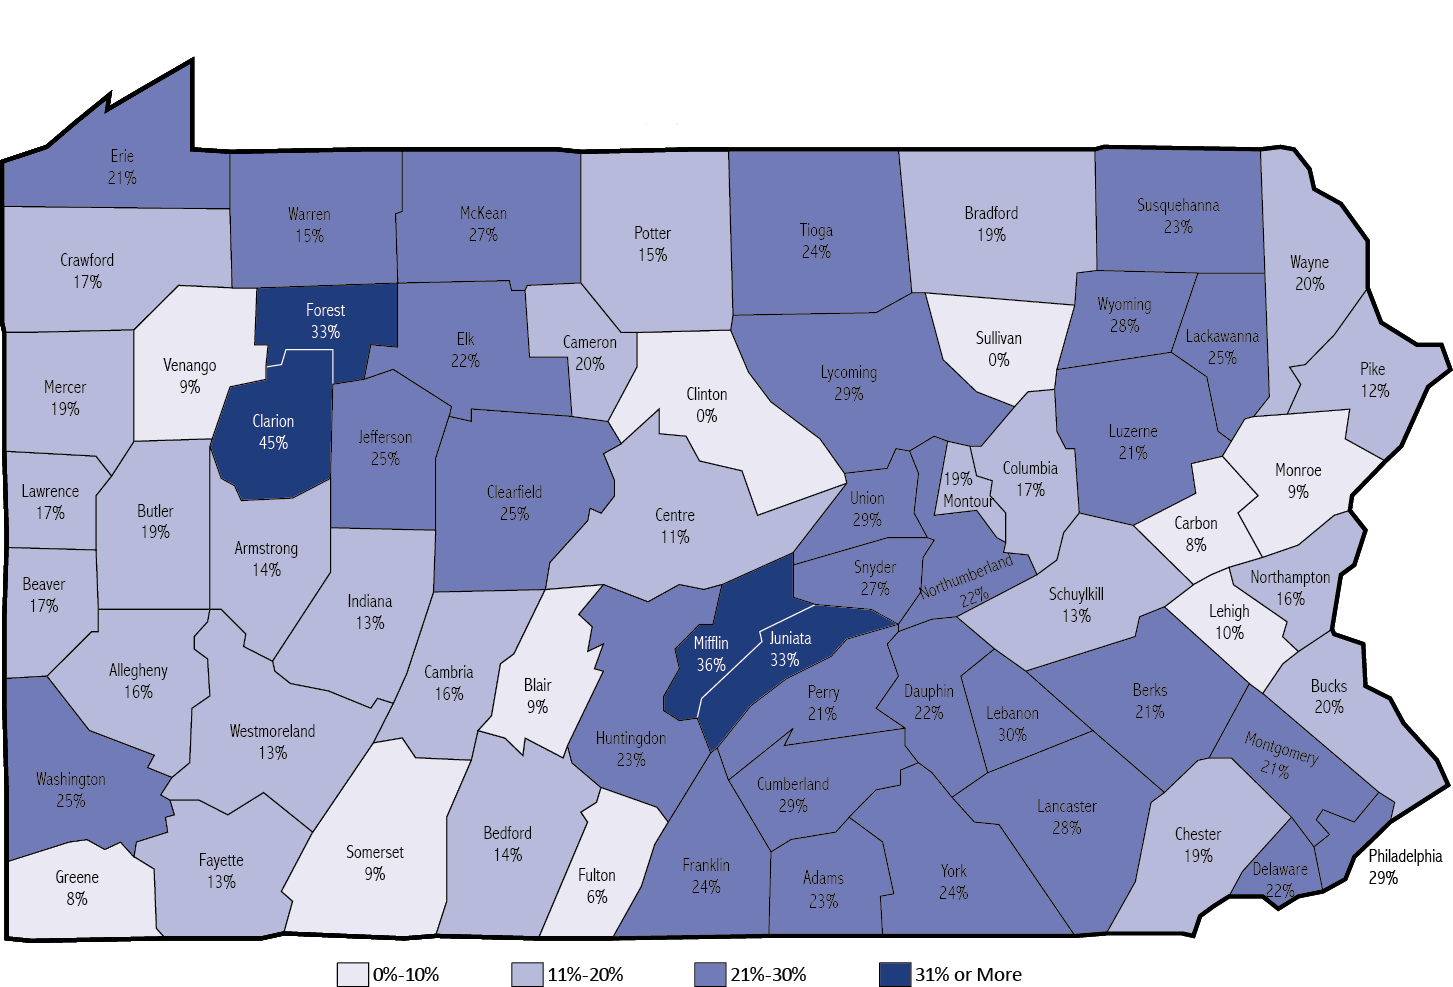 Pennsylvania Juvenile Recidivism Rates by